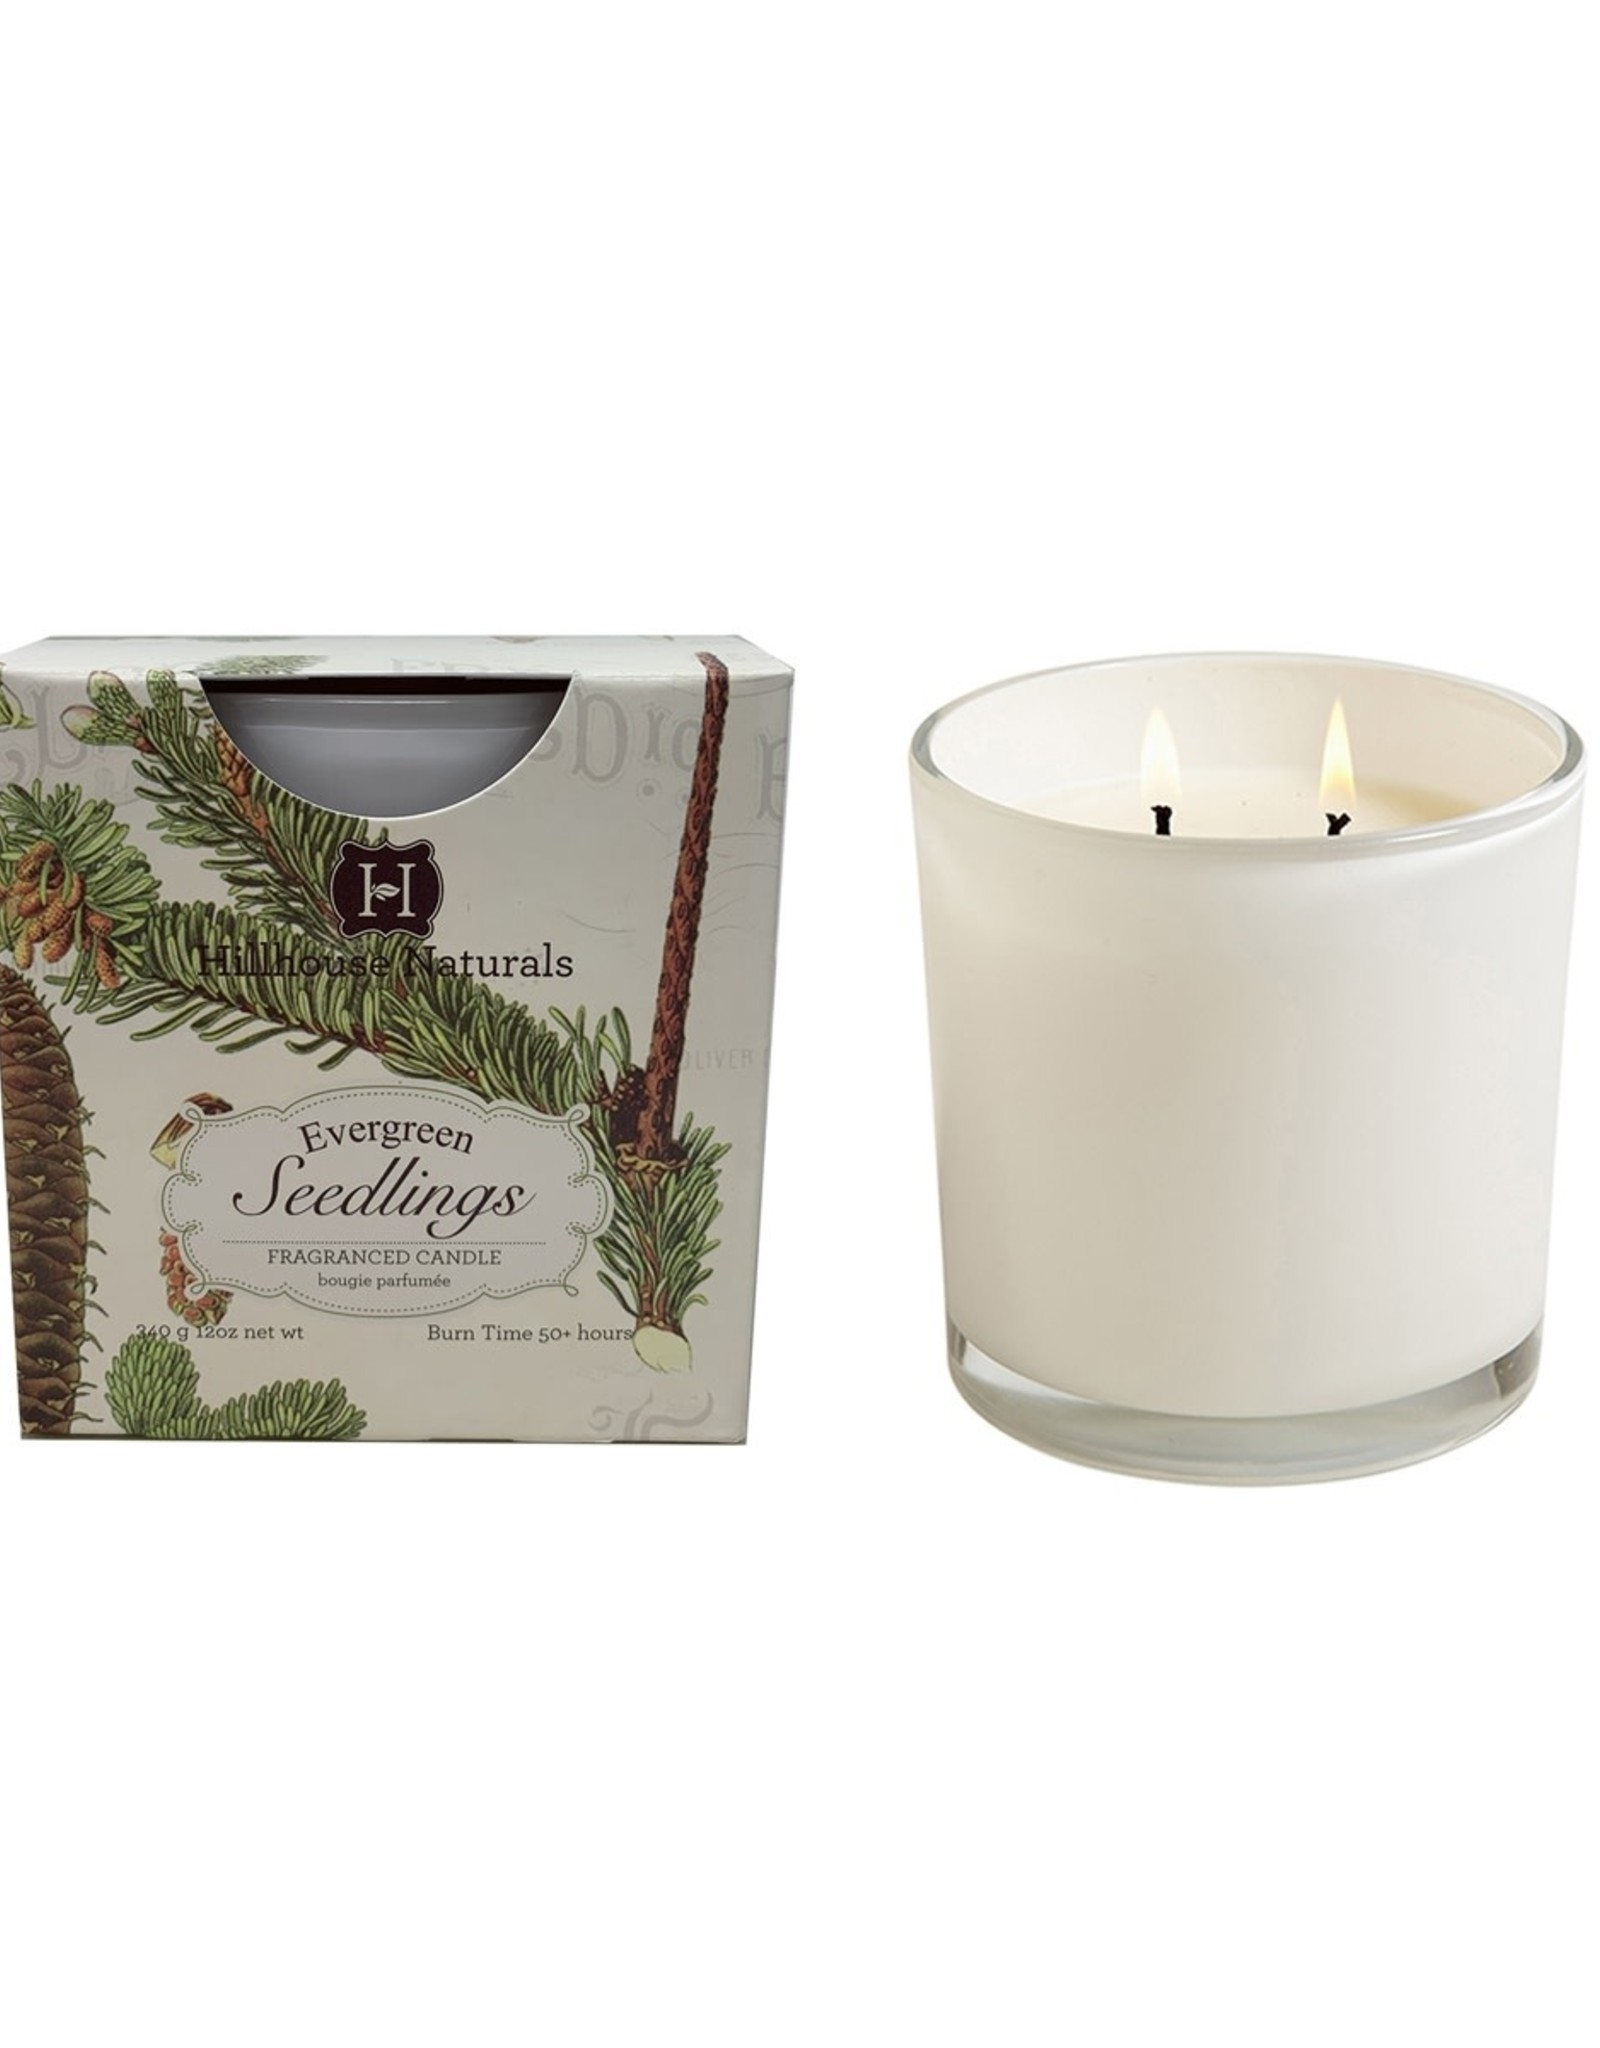 Hillhouse Naturals Evergreen Seedlings 2 Wick Candle in White Glass 12oz